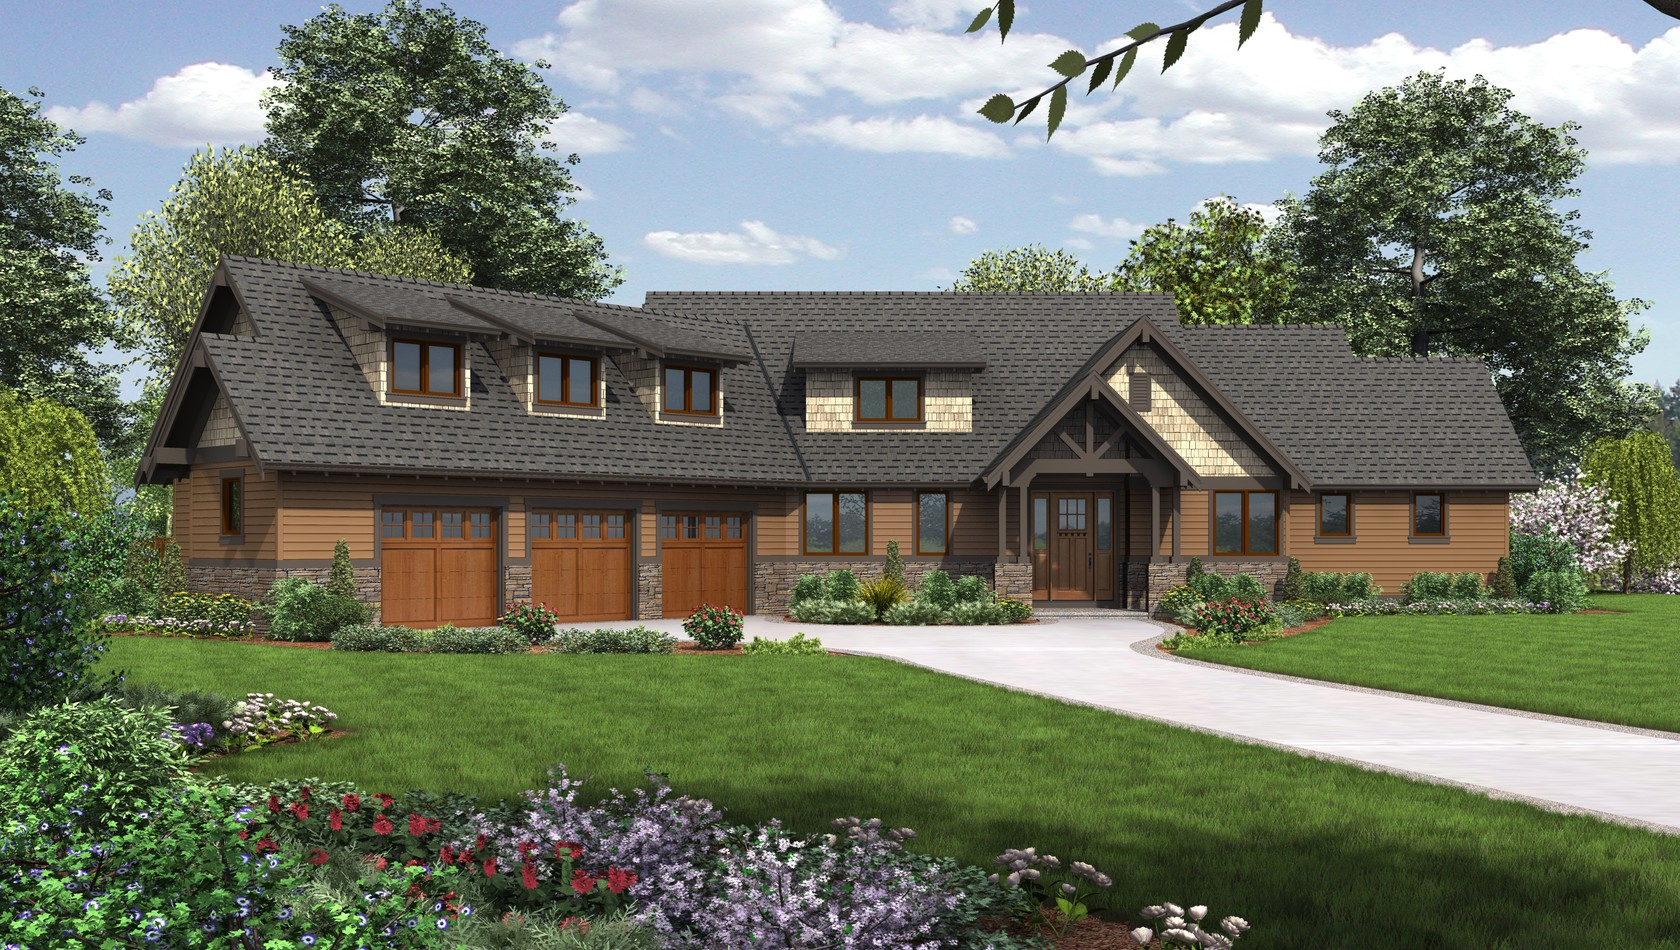 Main image for house plan B22156F: The